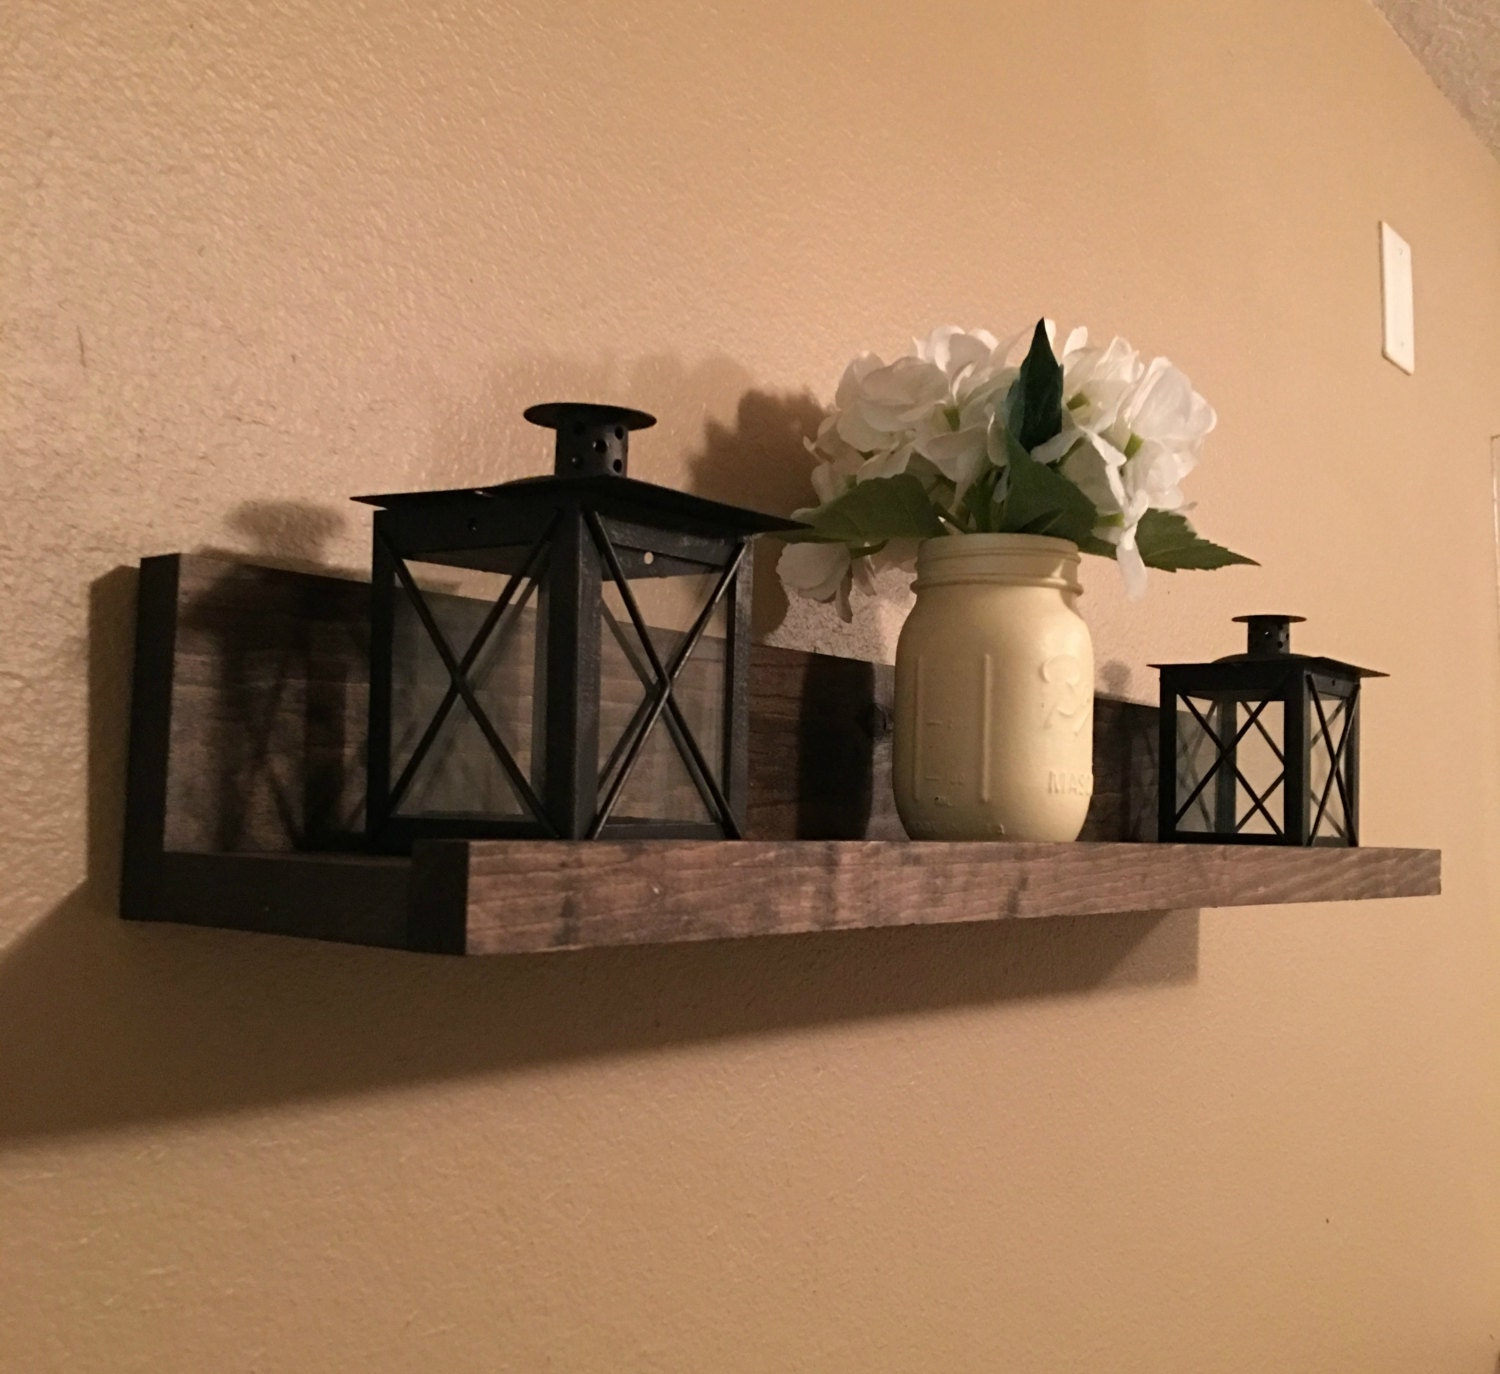 rustic wooden picture ledge shelf gallery wall by lisamarieds. Black Bedroom Furniture Sets. Home Design Ideas